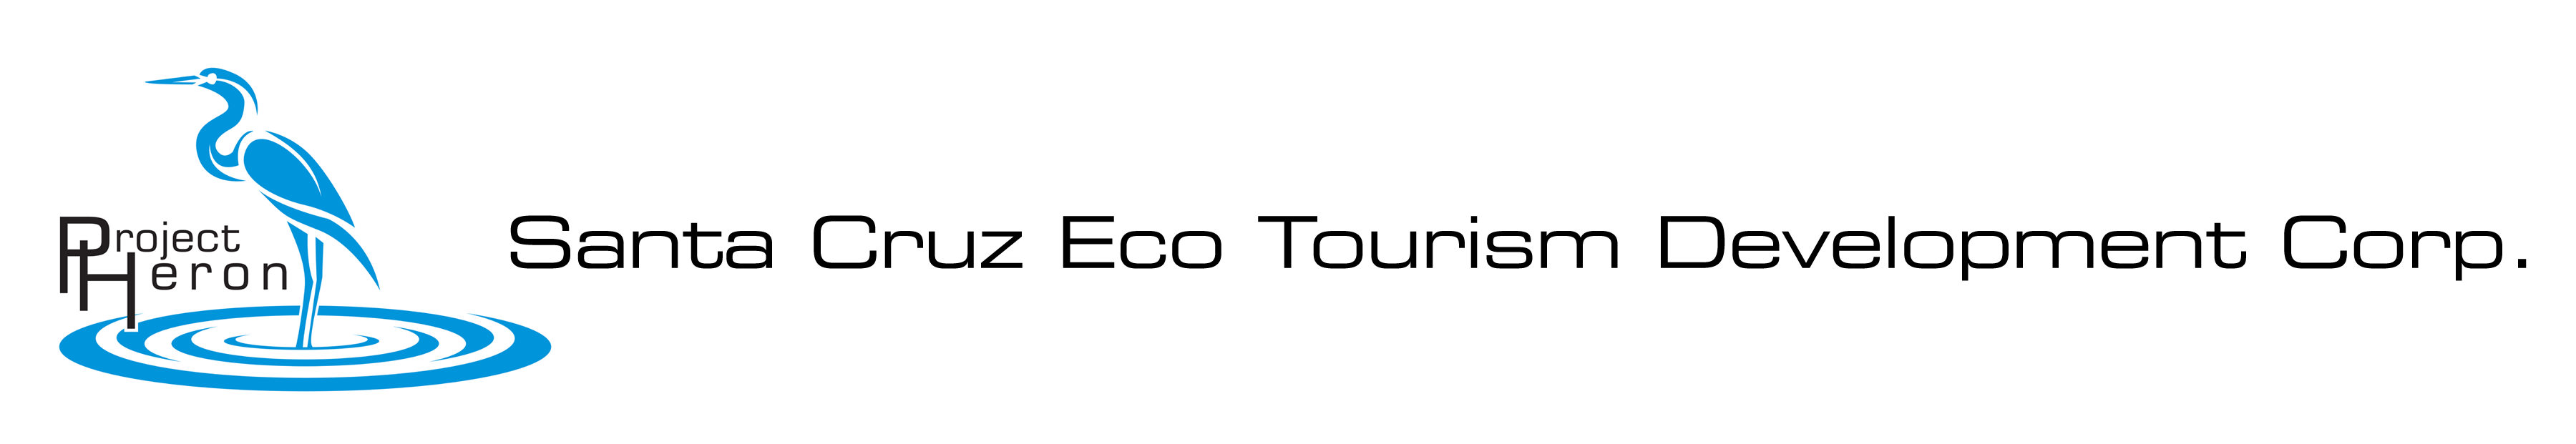 Santa Cruz Eco Tourism Development Corporation